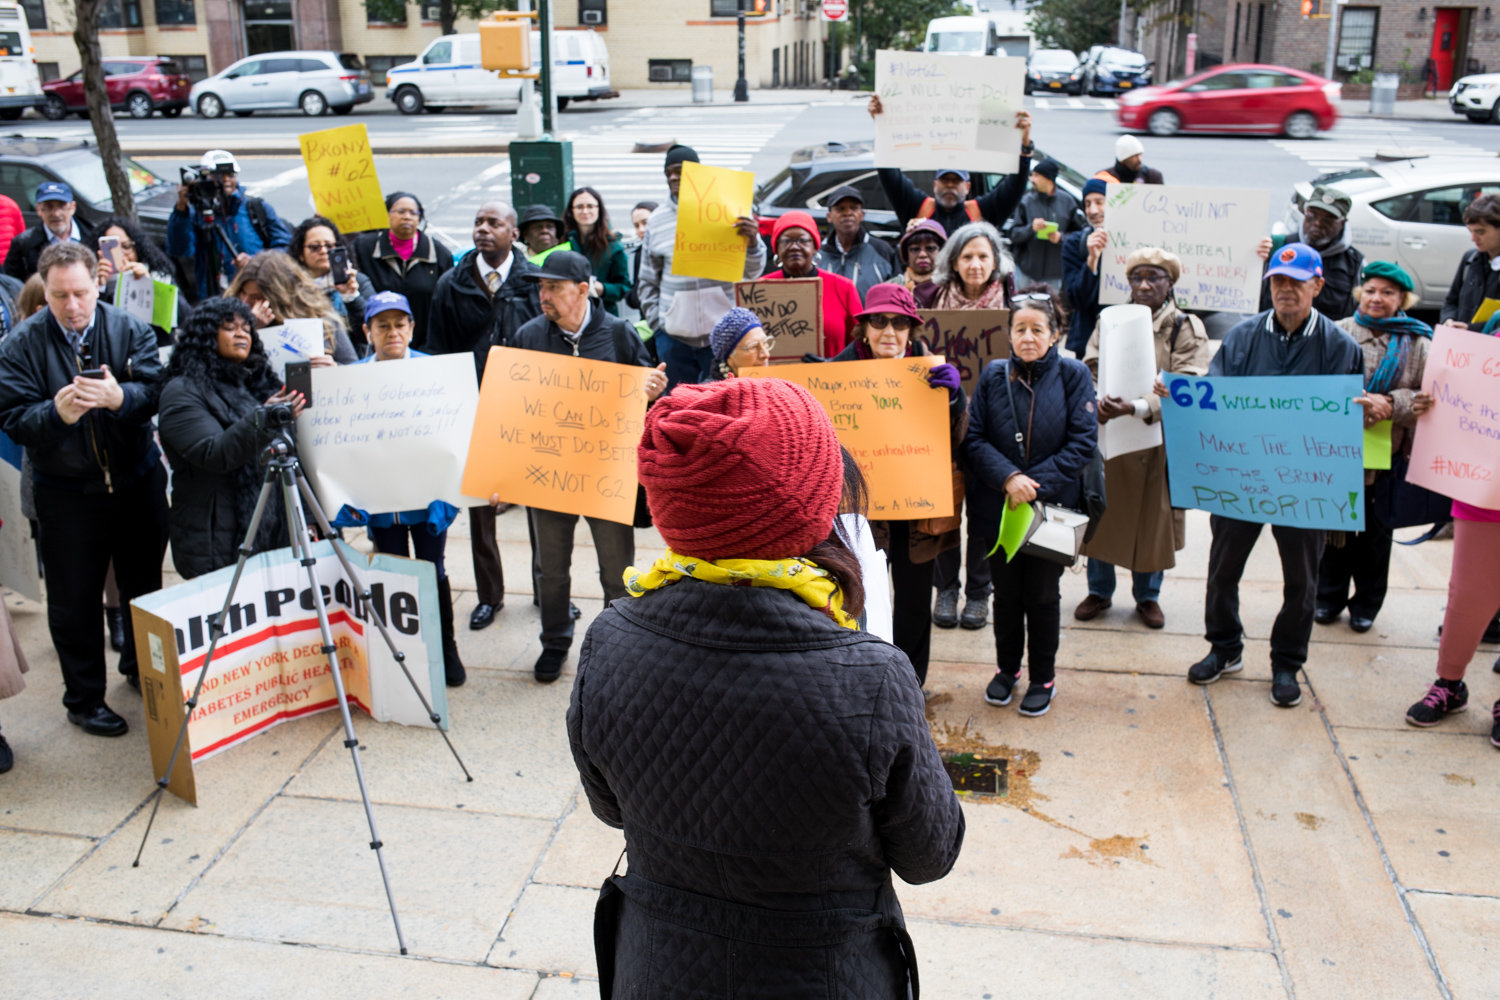 Charmaine Ruddock, the project director for Bronx Health Reach, speaks at a rally last year calling for improvements in health care in the Bronx, which ranked last out of the 62 counties in New York in the County Health Rankings and Roadmaps Report.